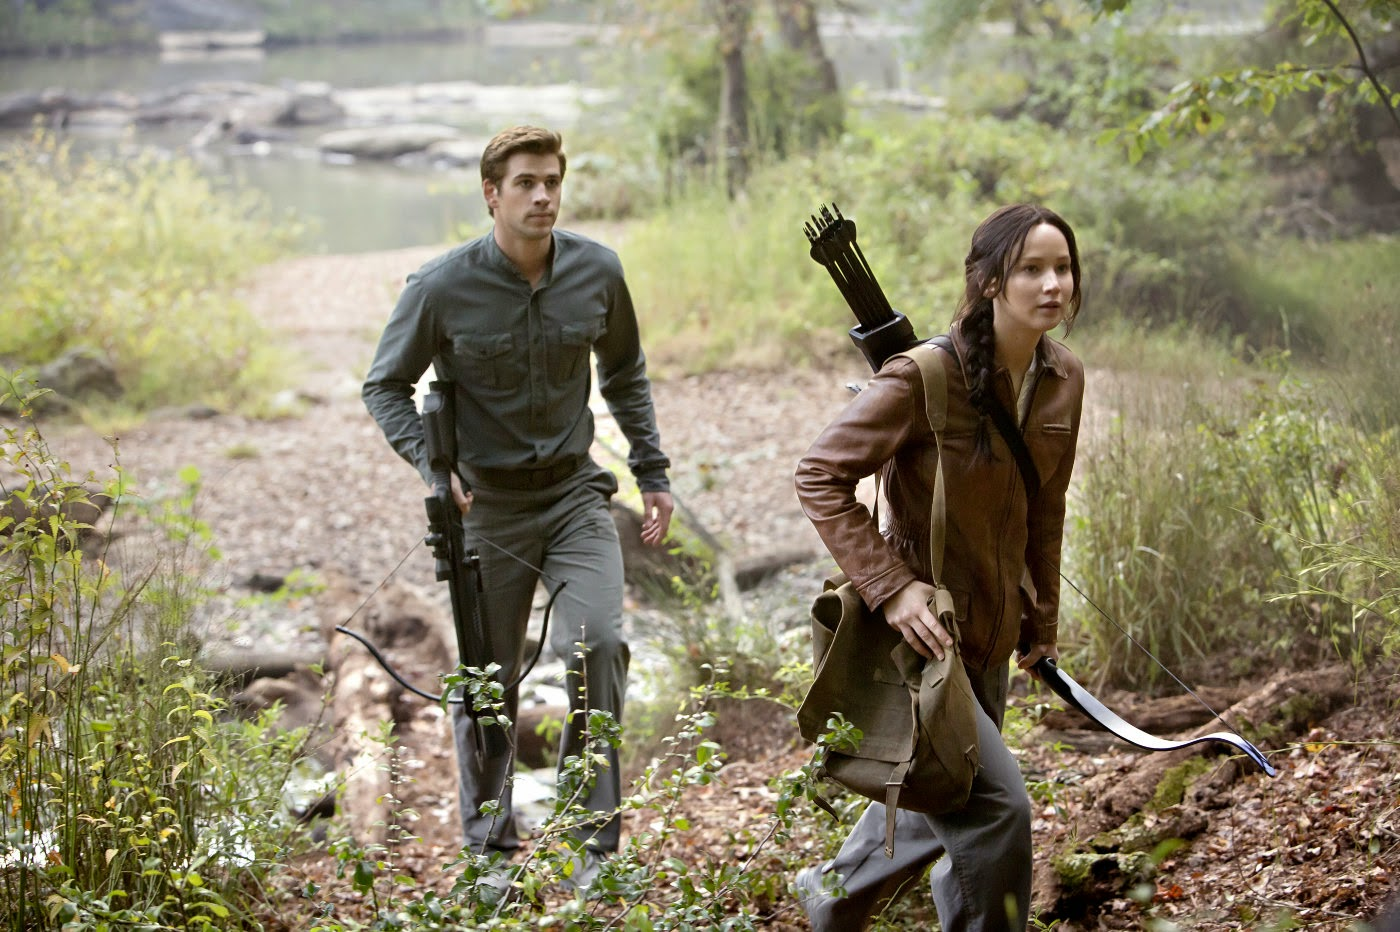 Liam Hemsworth and Jennifer Lawrence in The Hunger Games: Mockingjay part 1